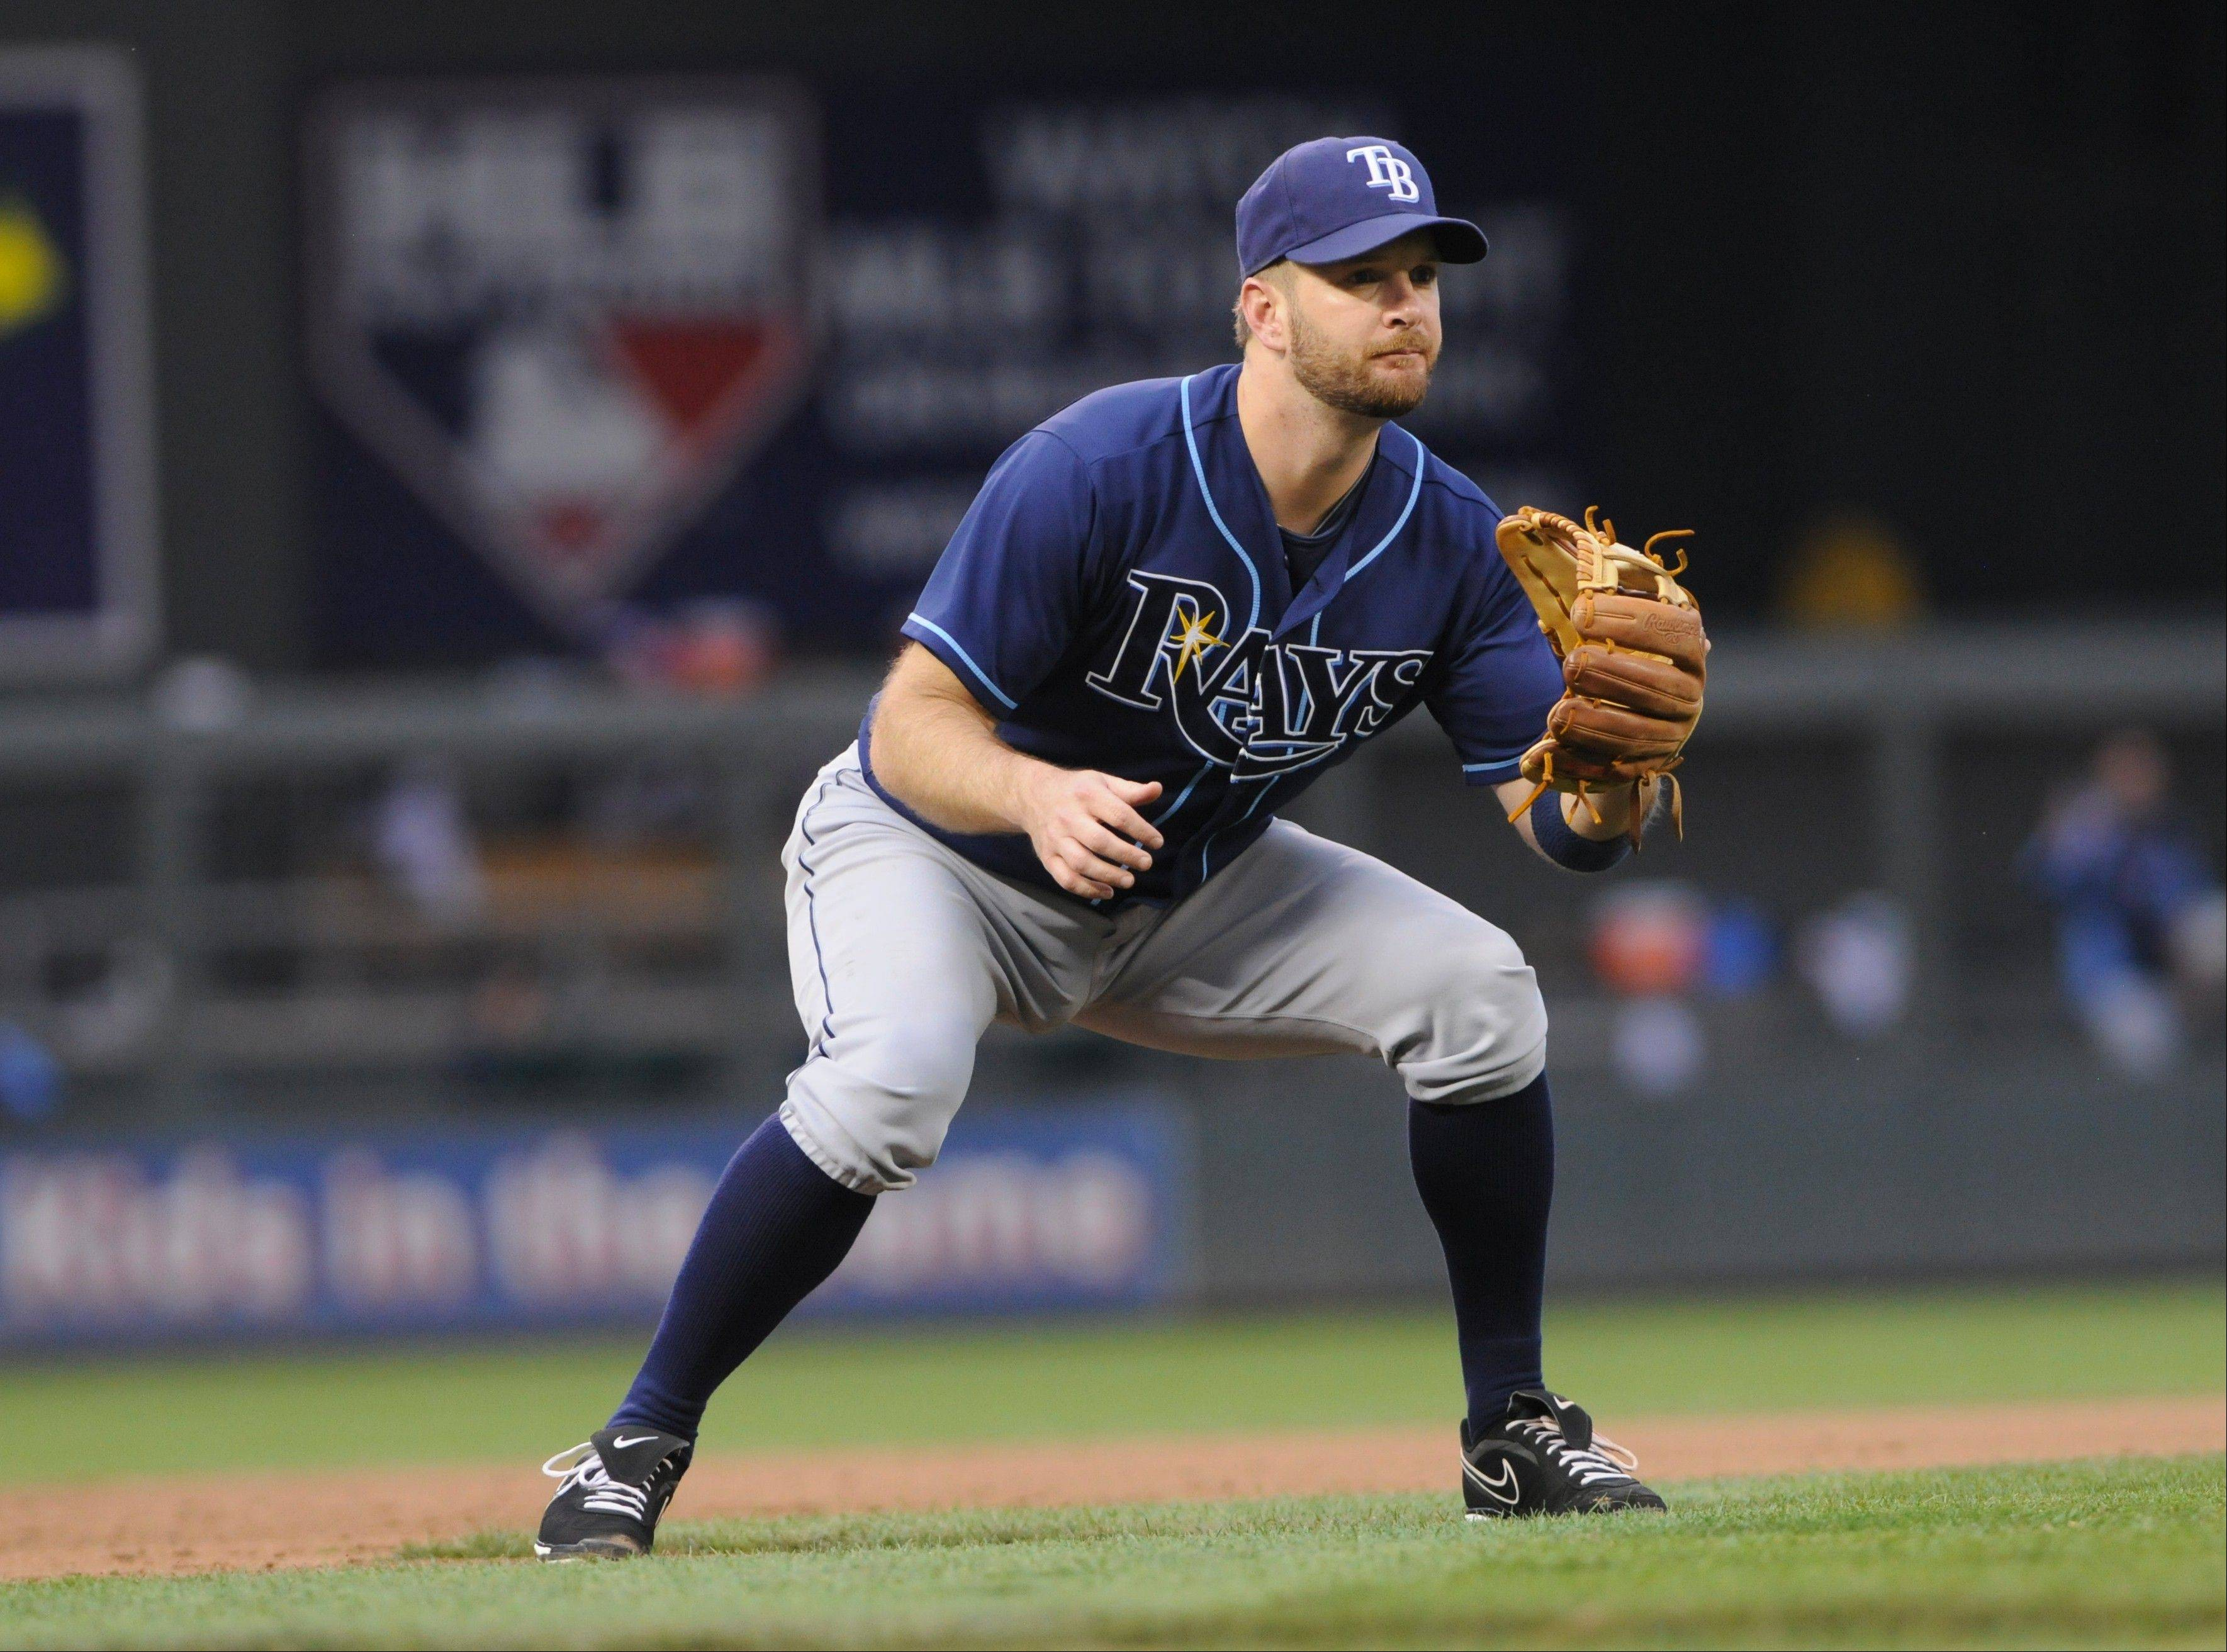 Jeff Keppinger, a free agent who reportedly has signed a three-year deal with the White Sox, played first, second and third for Tampa Bay last season.